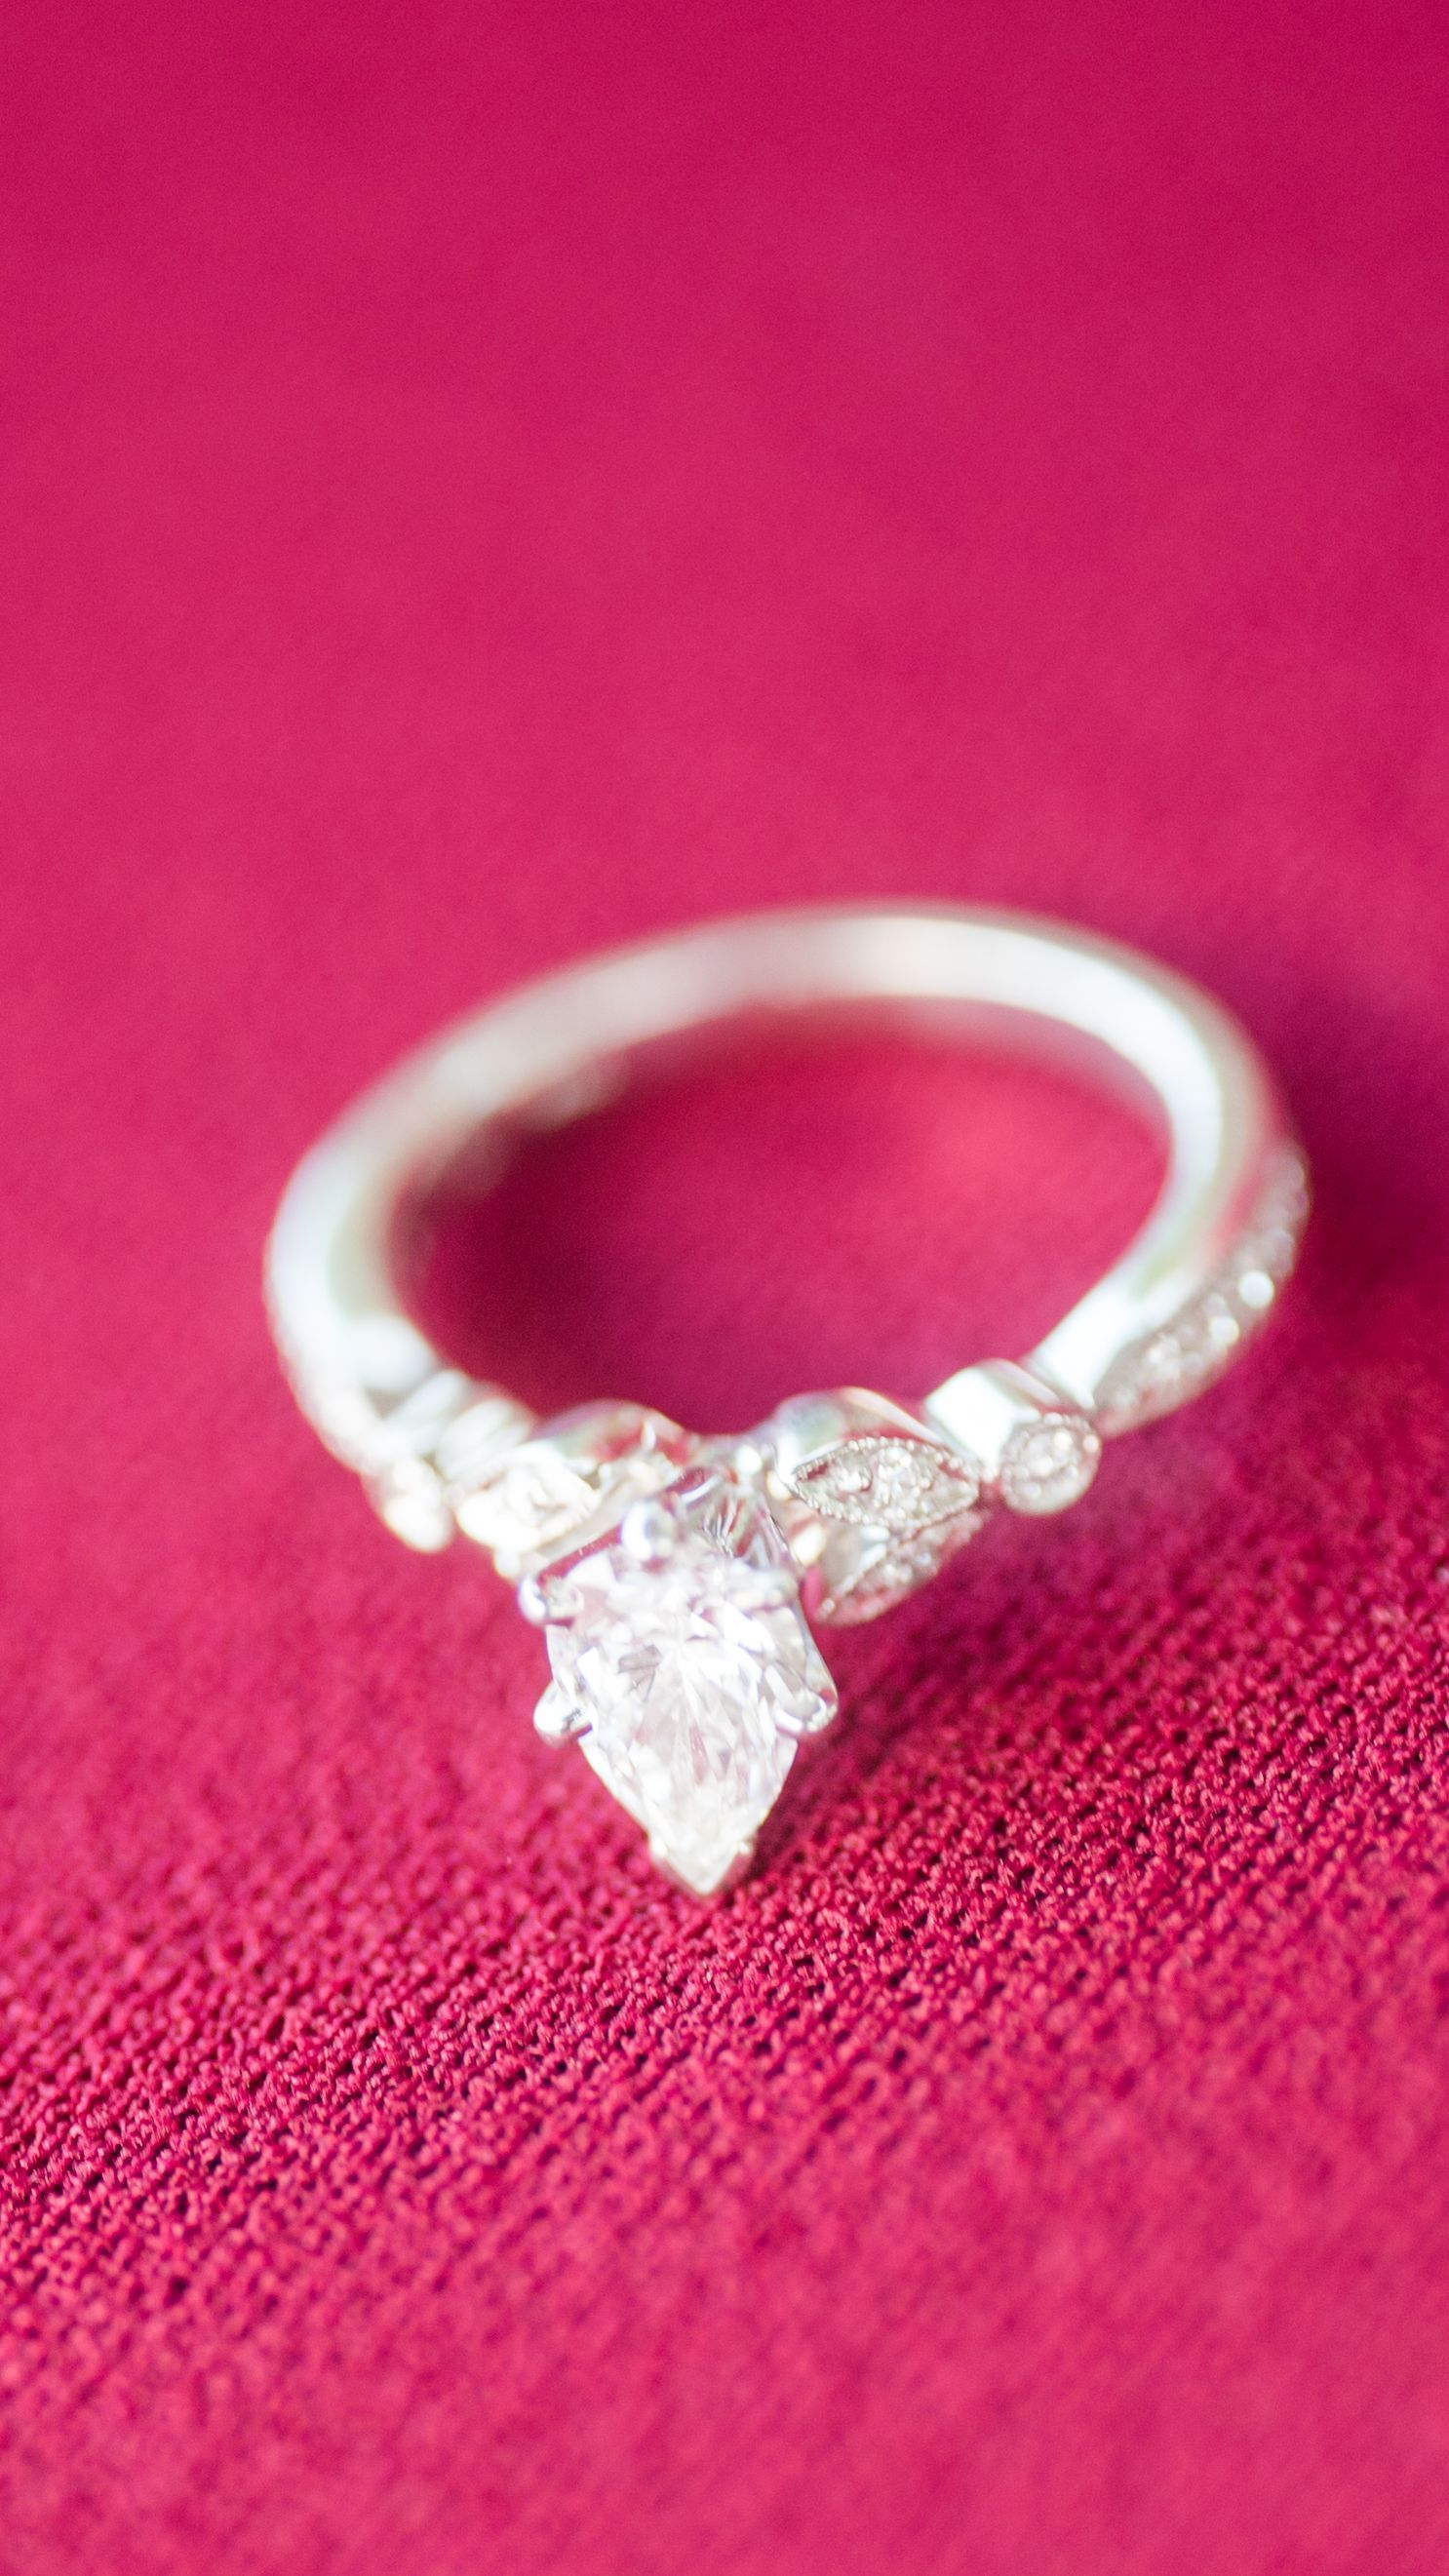 Loving the details of this unique pear shaped engagement ring ...